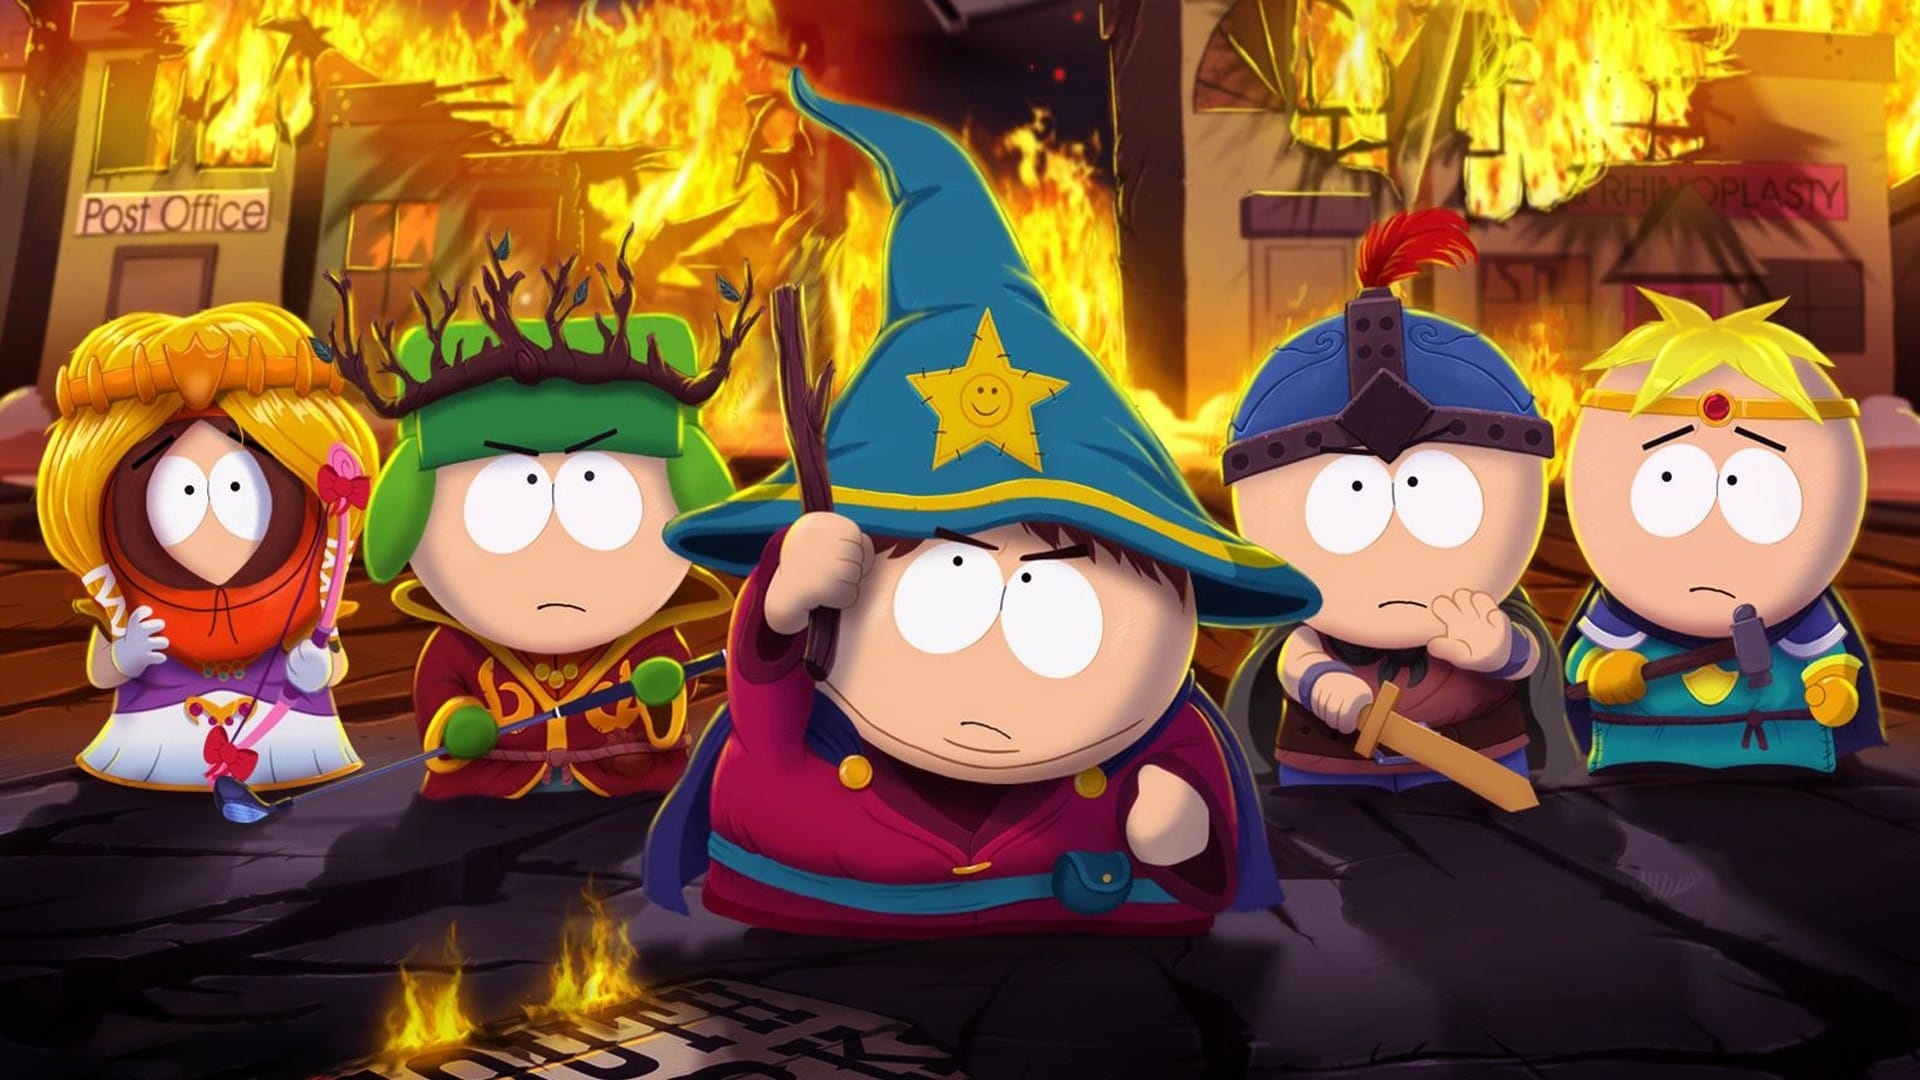 South Park hd background